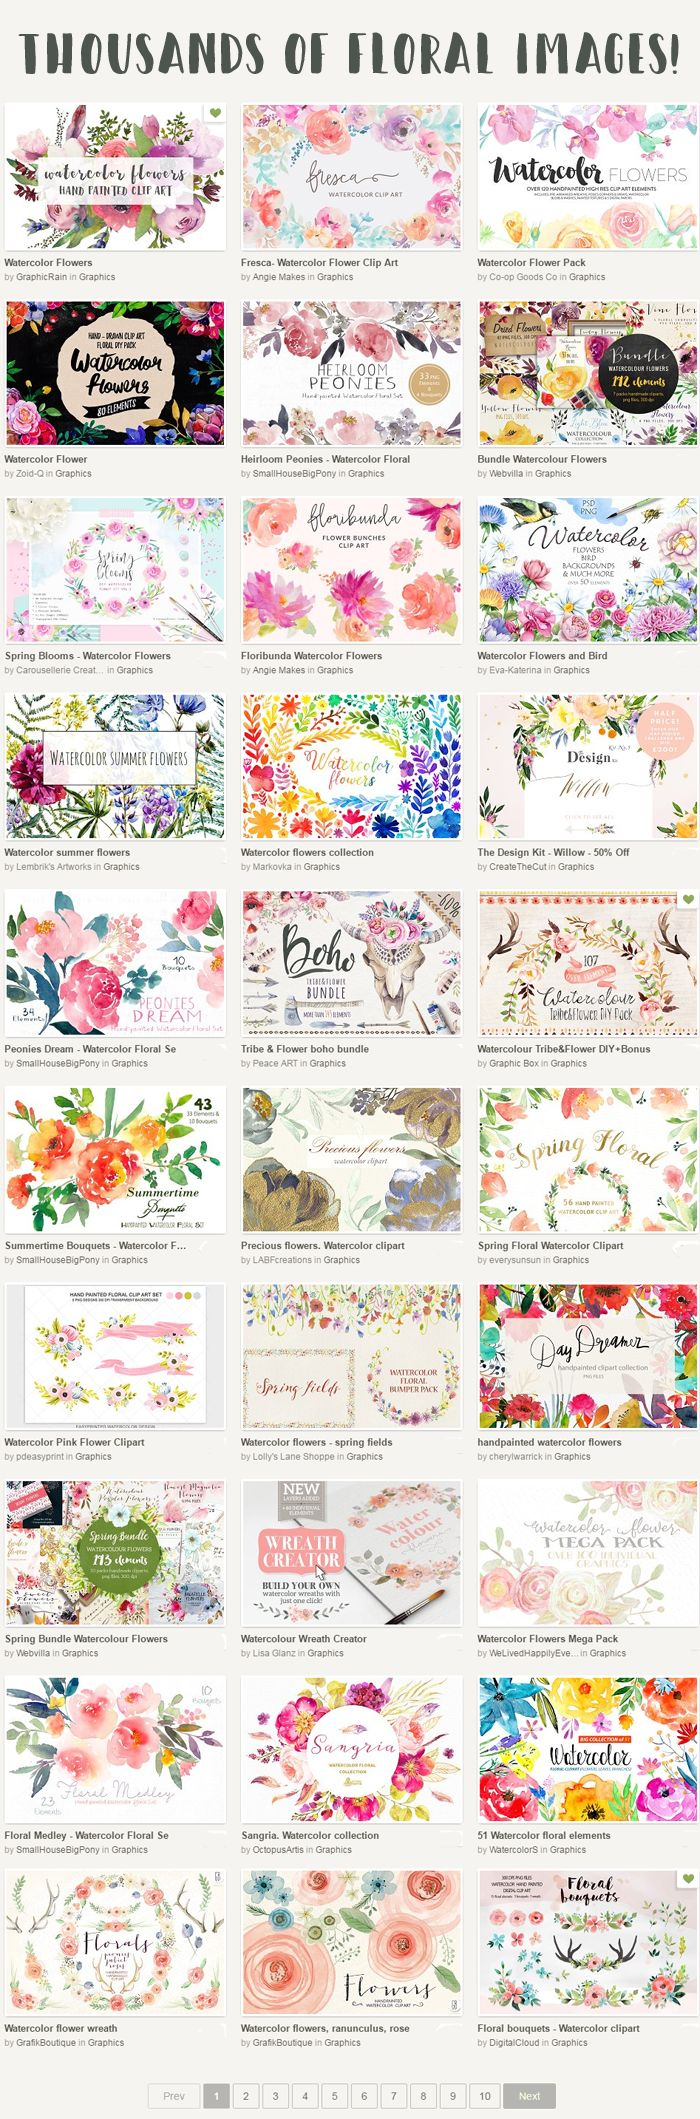 You might also like ... Filter by Post type Post Page Category Freebie images Planner Addict Free Vintage Clip Art Sort by Title Relevance Free Planner Printables: Anemone Blush 2016-05-21 14:42:33 freeprettythings 1 Free Planner Printables-Floral Fun! 2016-05-12 20:05:22 freeprettythings 1 Free Planner Addict Printable Stickers- Roses and Feathers 2016-05-08 23:14:54 freeprettythings 1 Free Vintage …